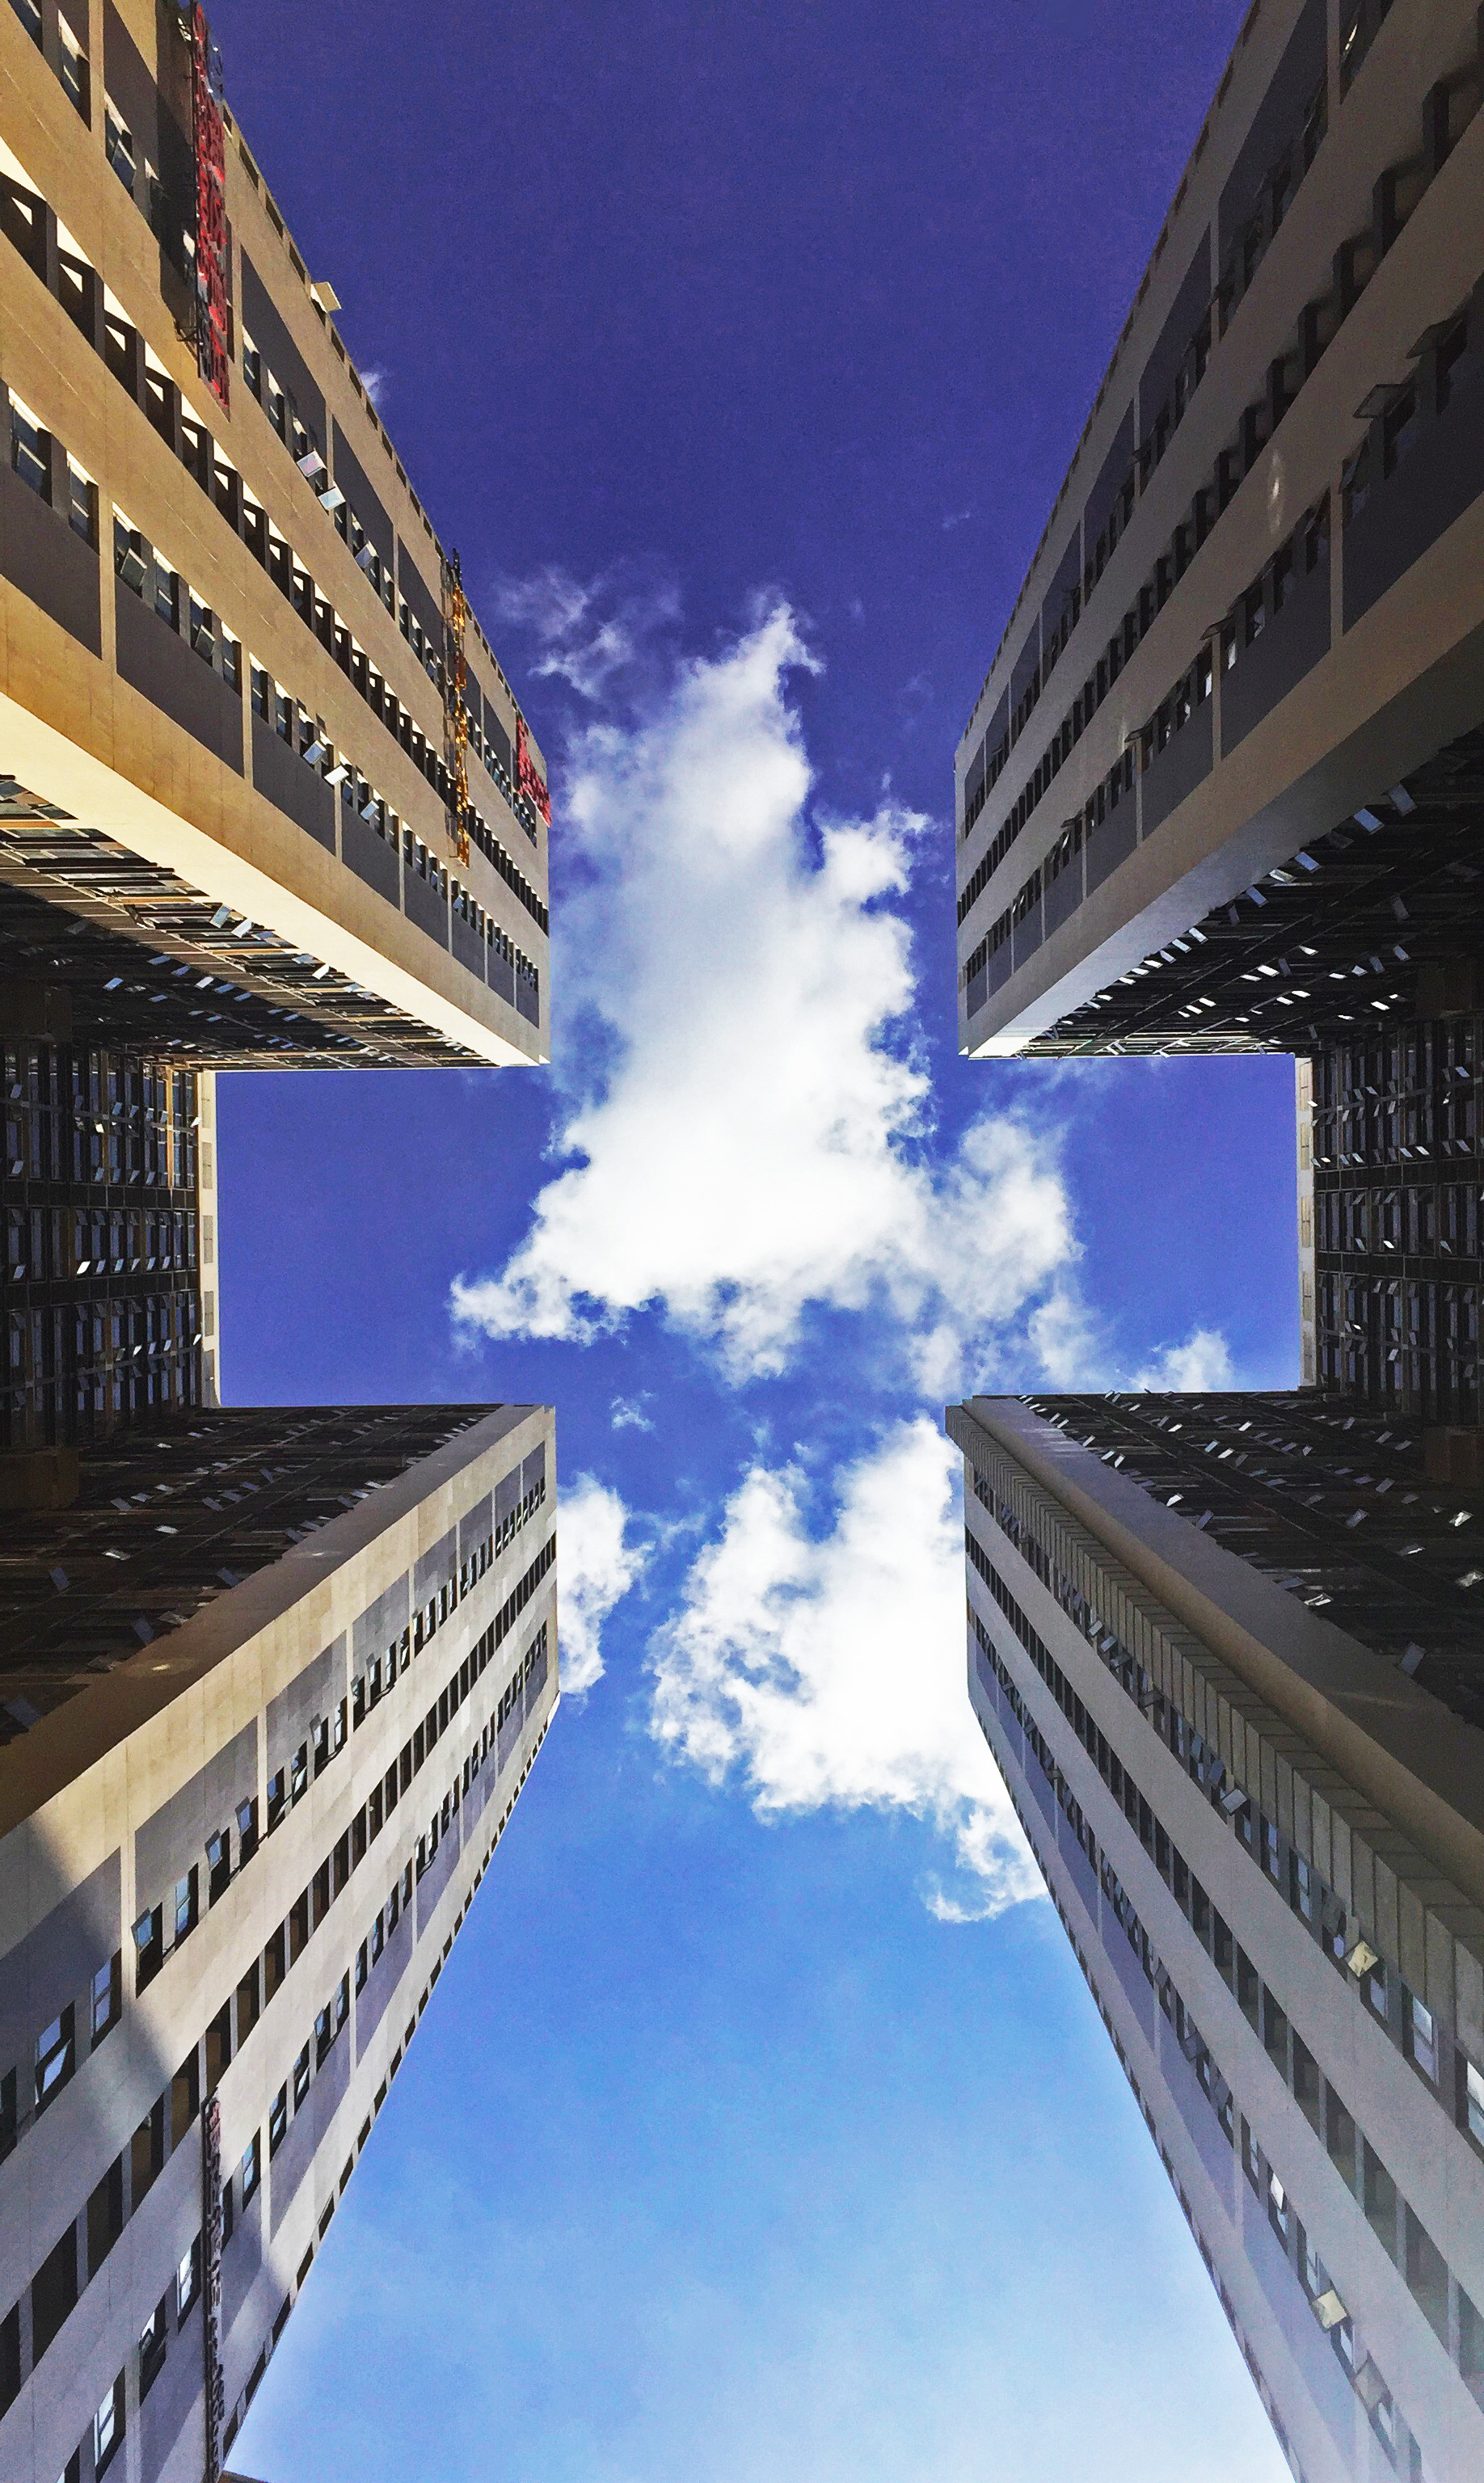 Urban Wallpaper Hd Low Angle View Of Skyscraper Against Cloudy Sky 183 Free